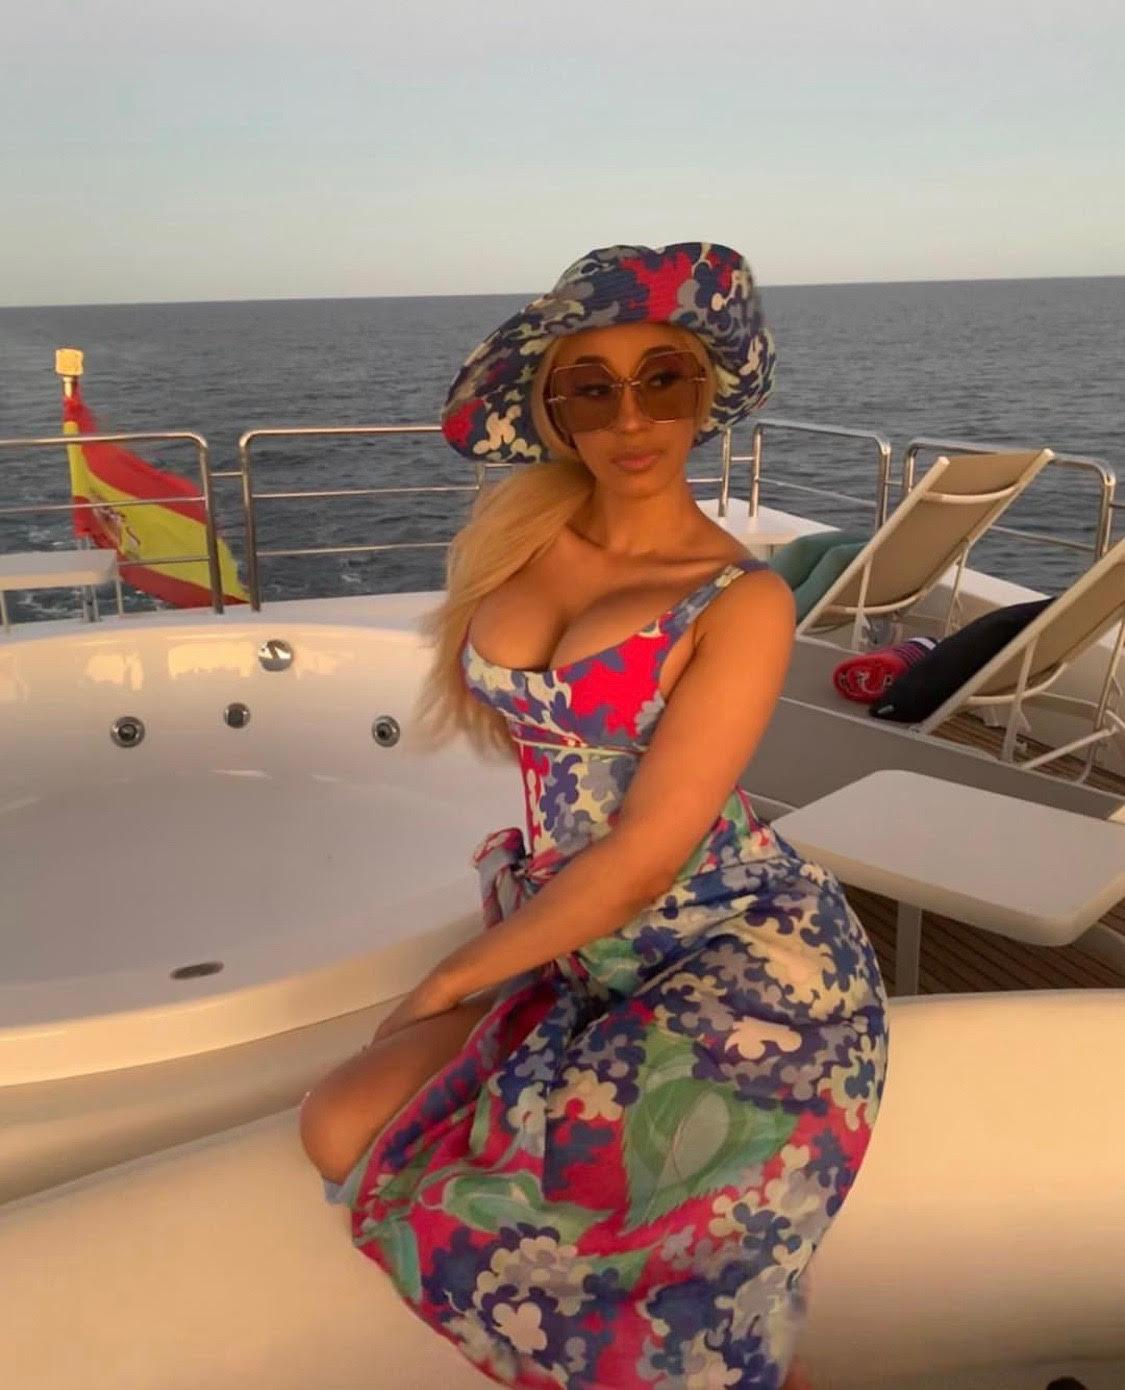 a Latino lady with blonde hair sitting a boat with sunglasses on her face.